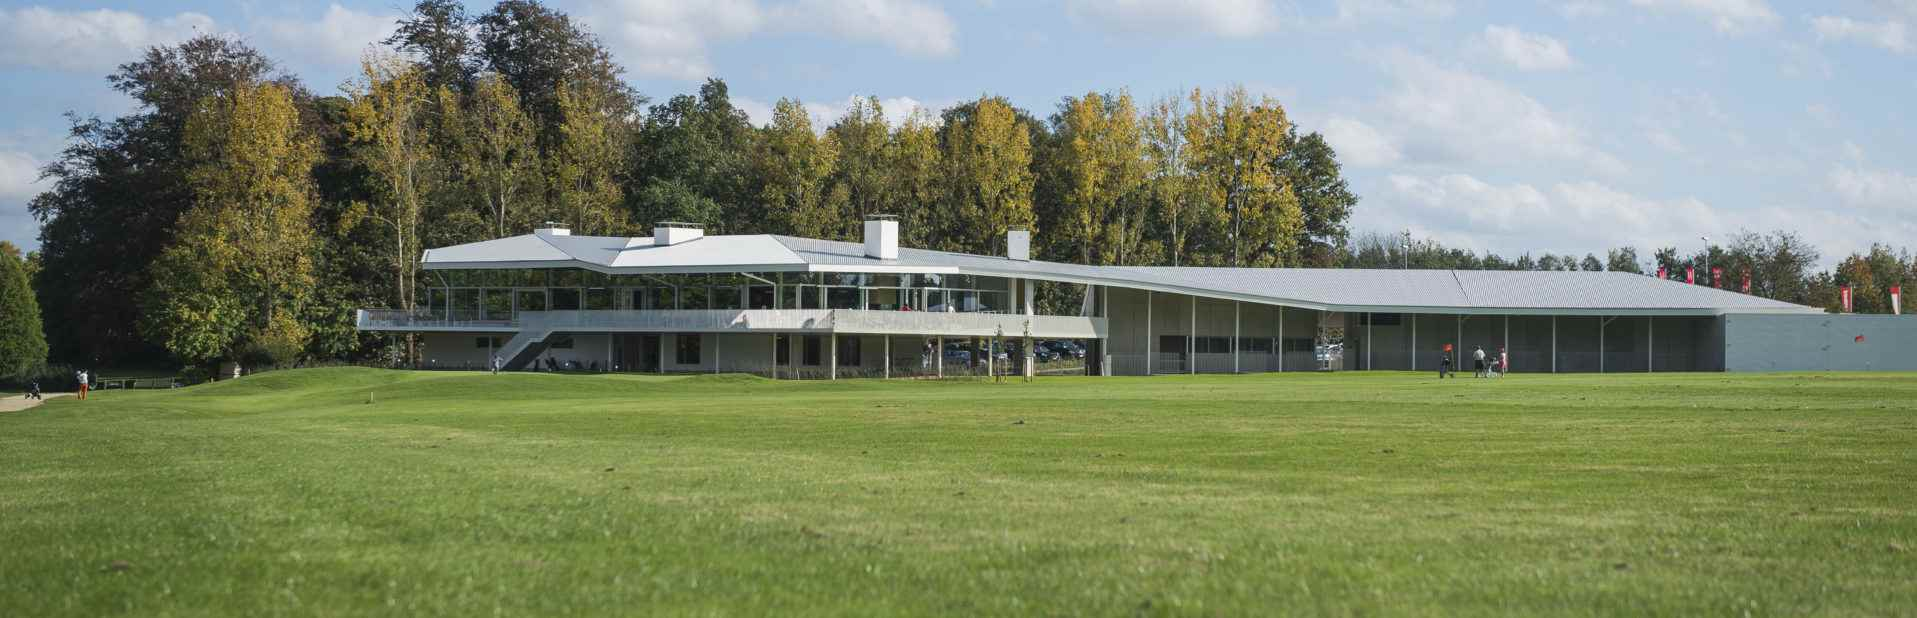 Update Covid-19 Winge Golf & Country Club